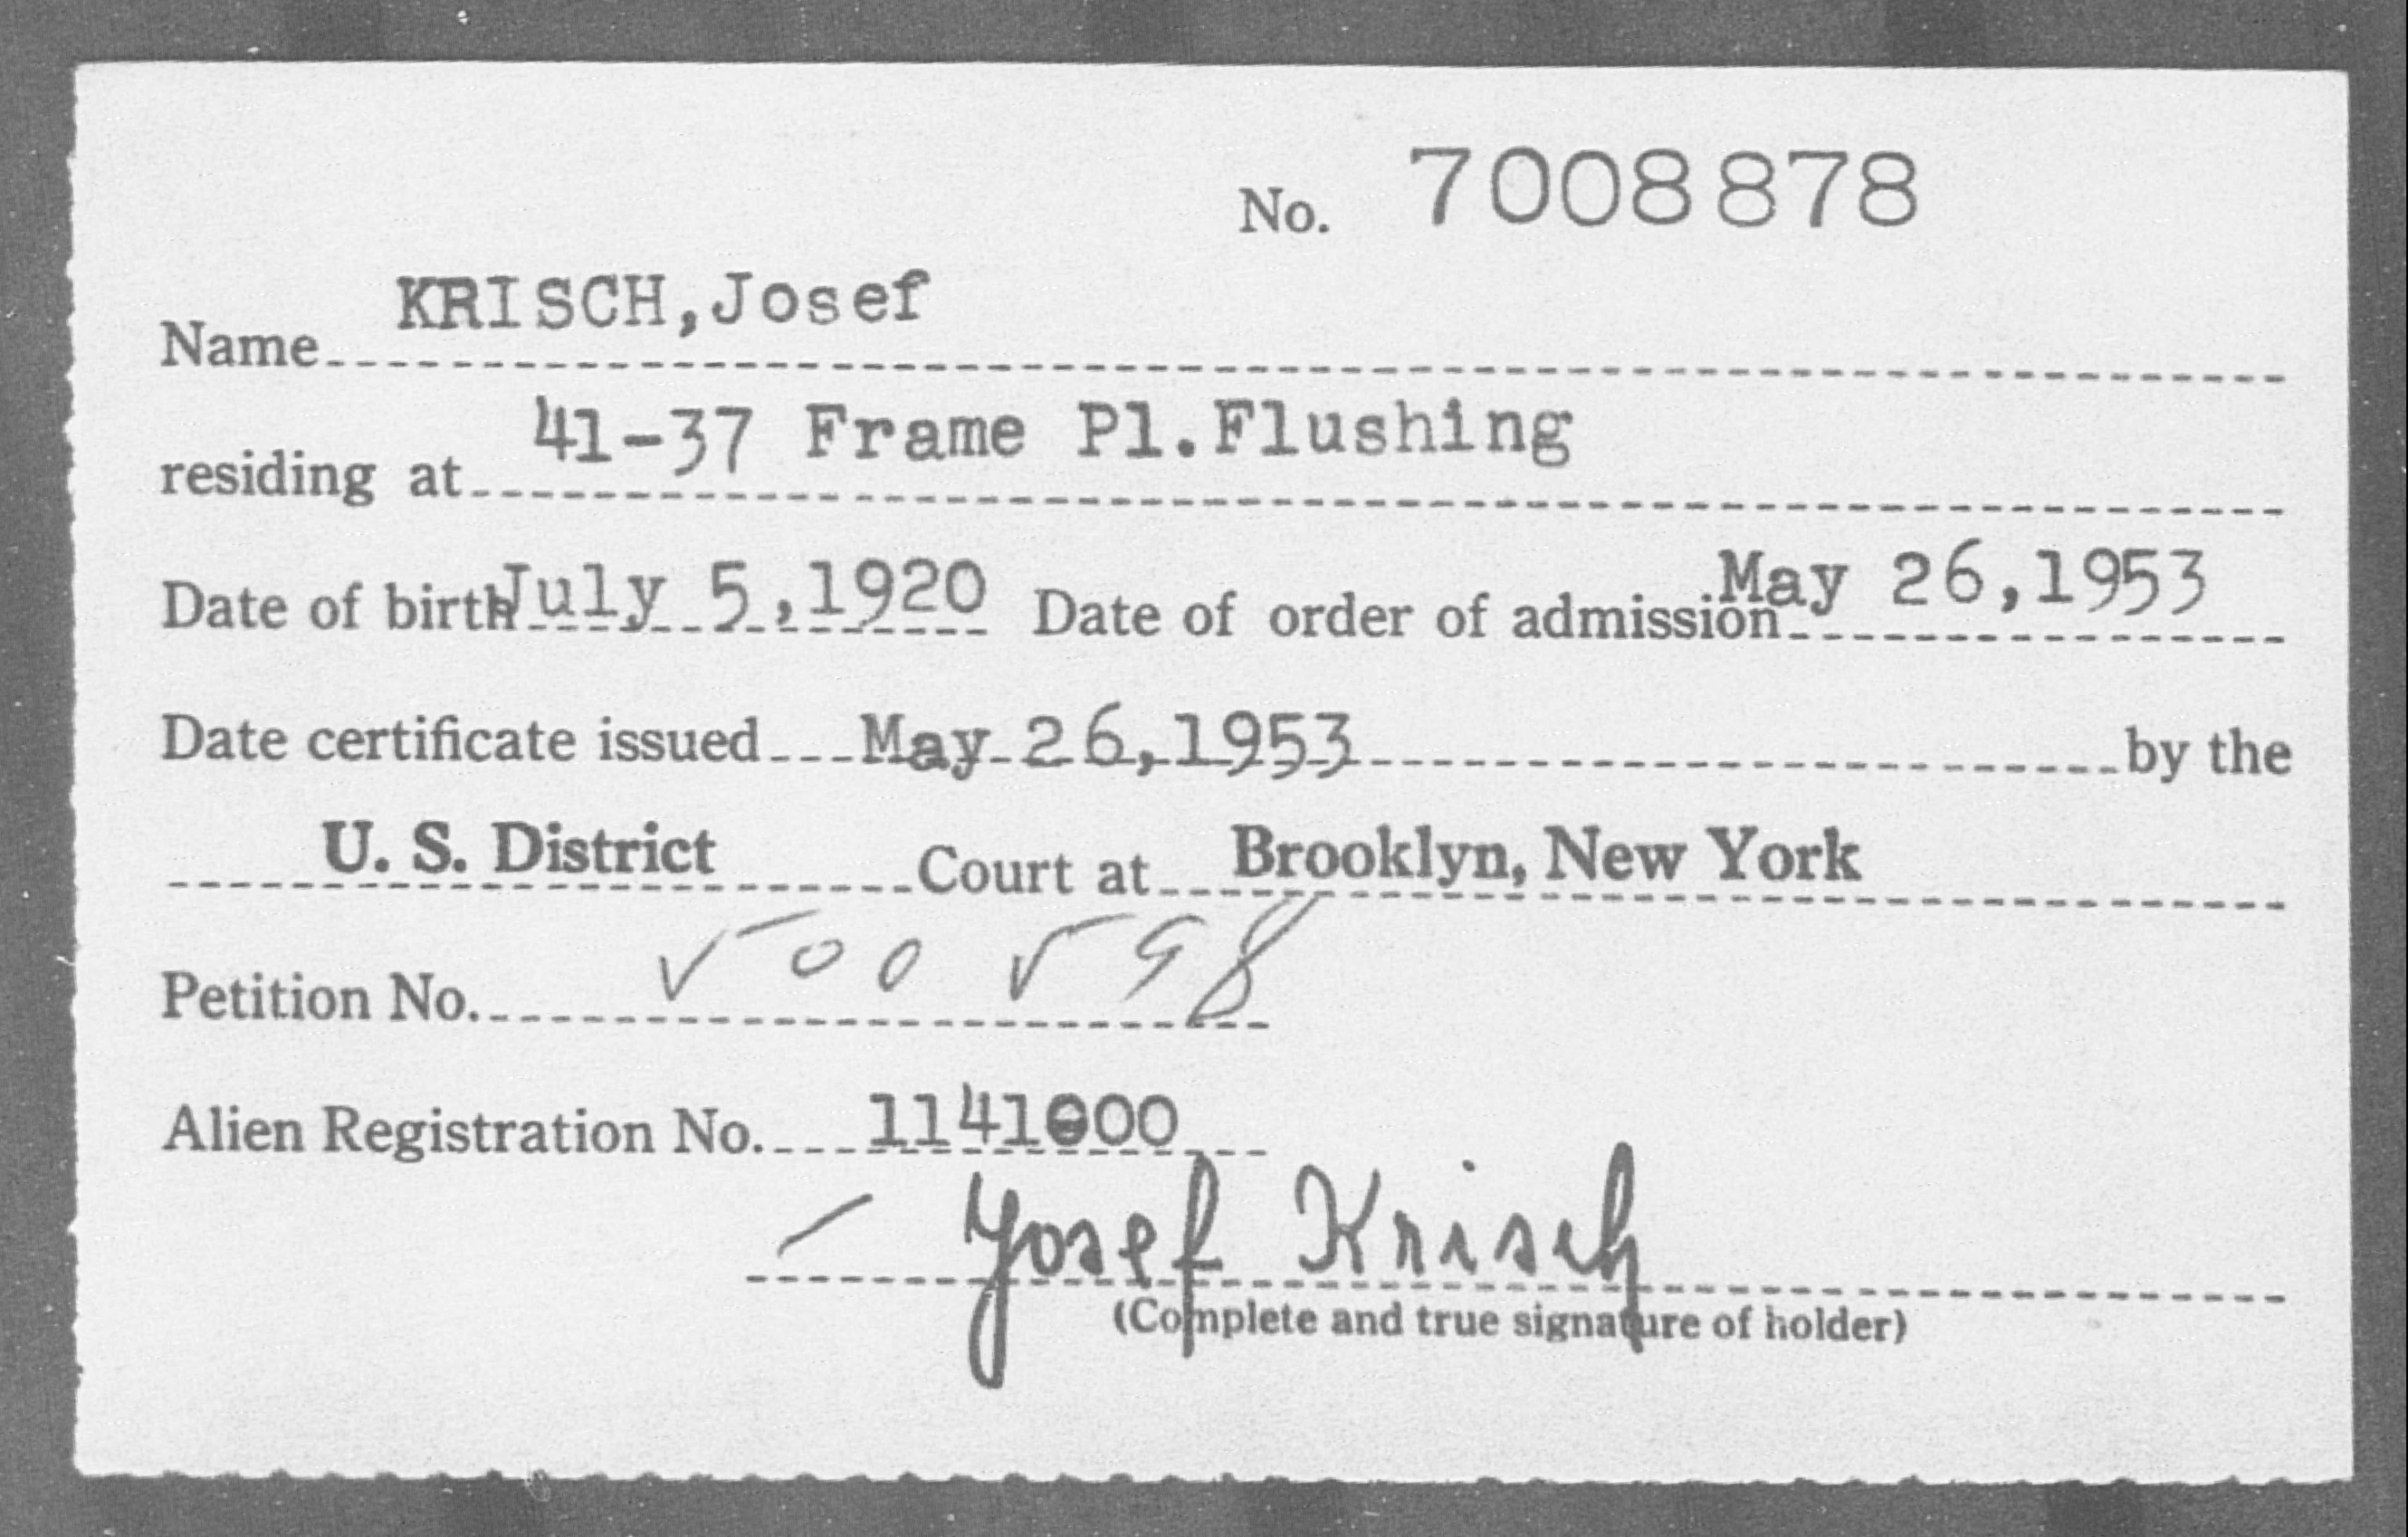 KRISCH, Josef - Born: 1920, Naturalized: 1953